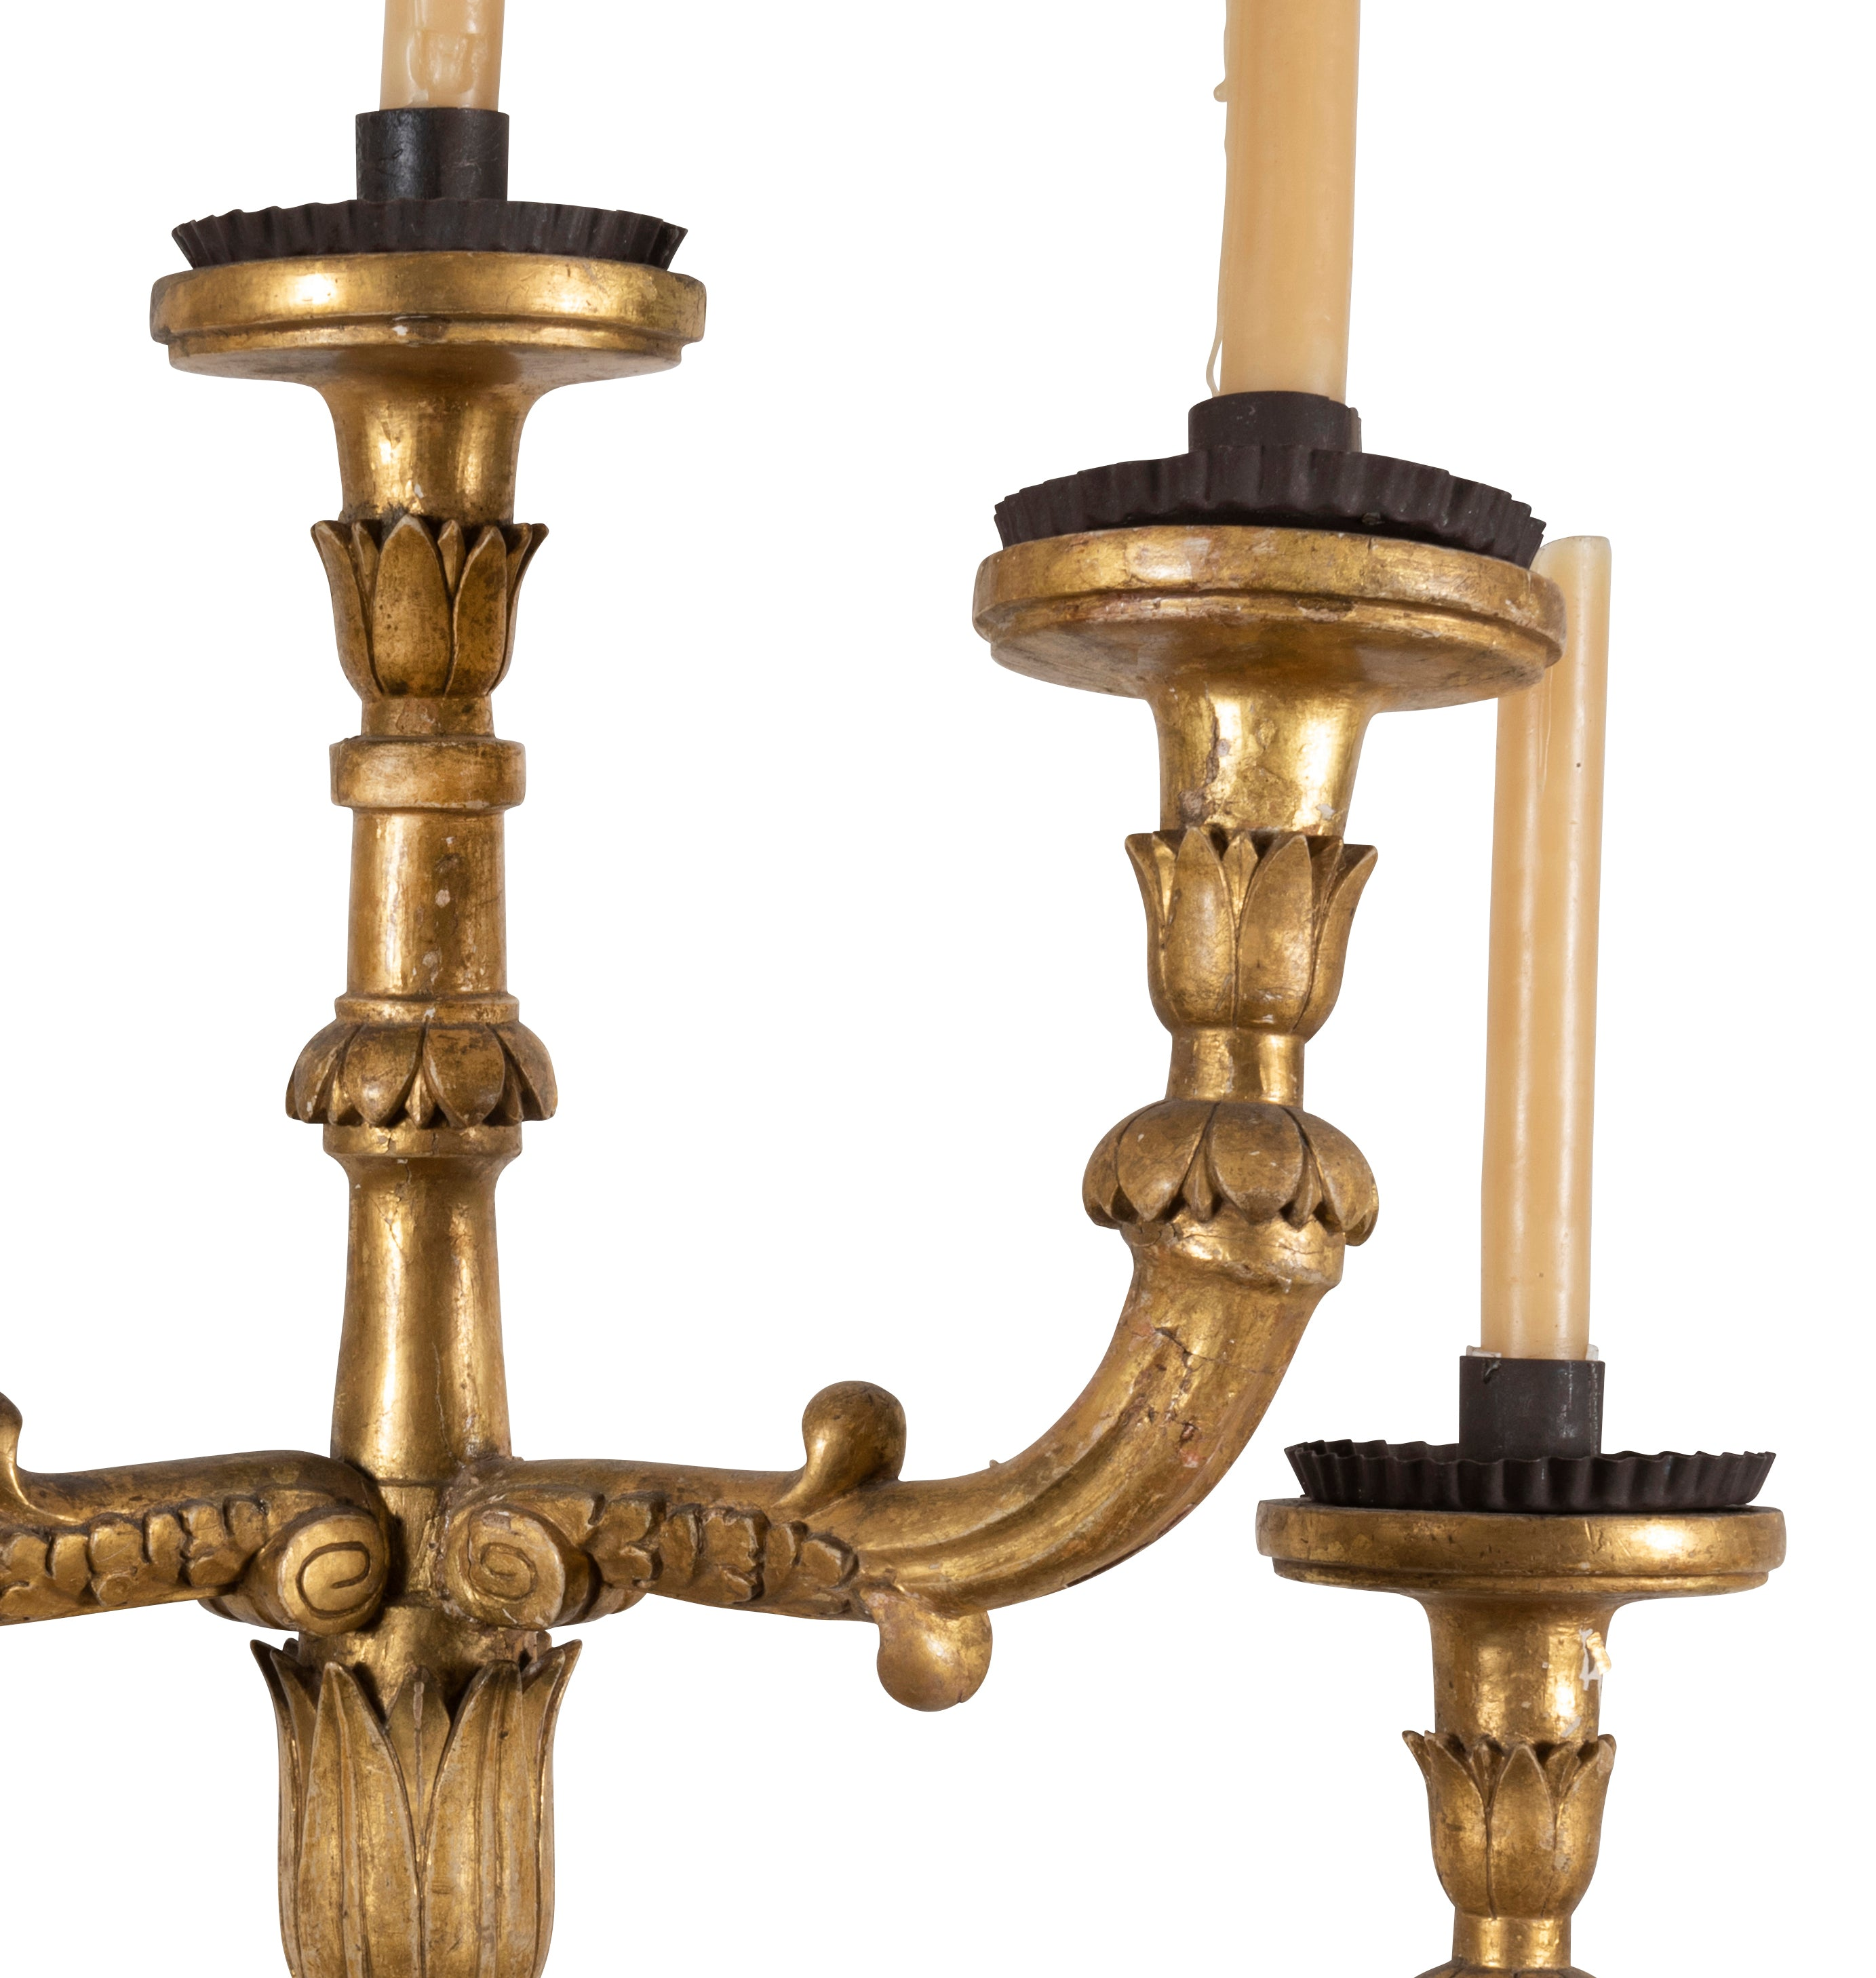 A Pair of 17th Century Spanish Carlos II Carved Giltwood Wall Sconces